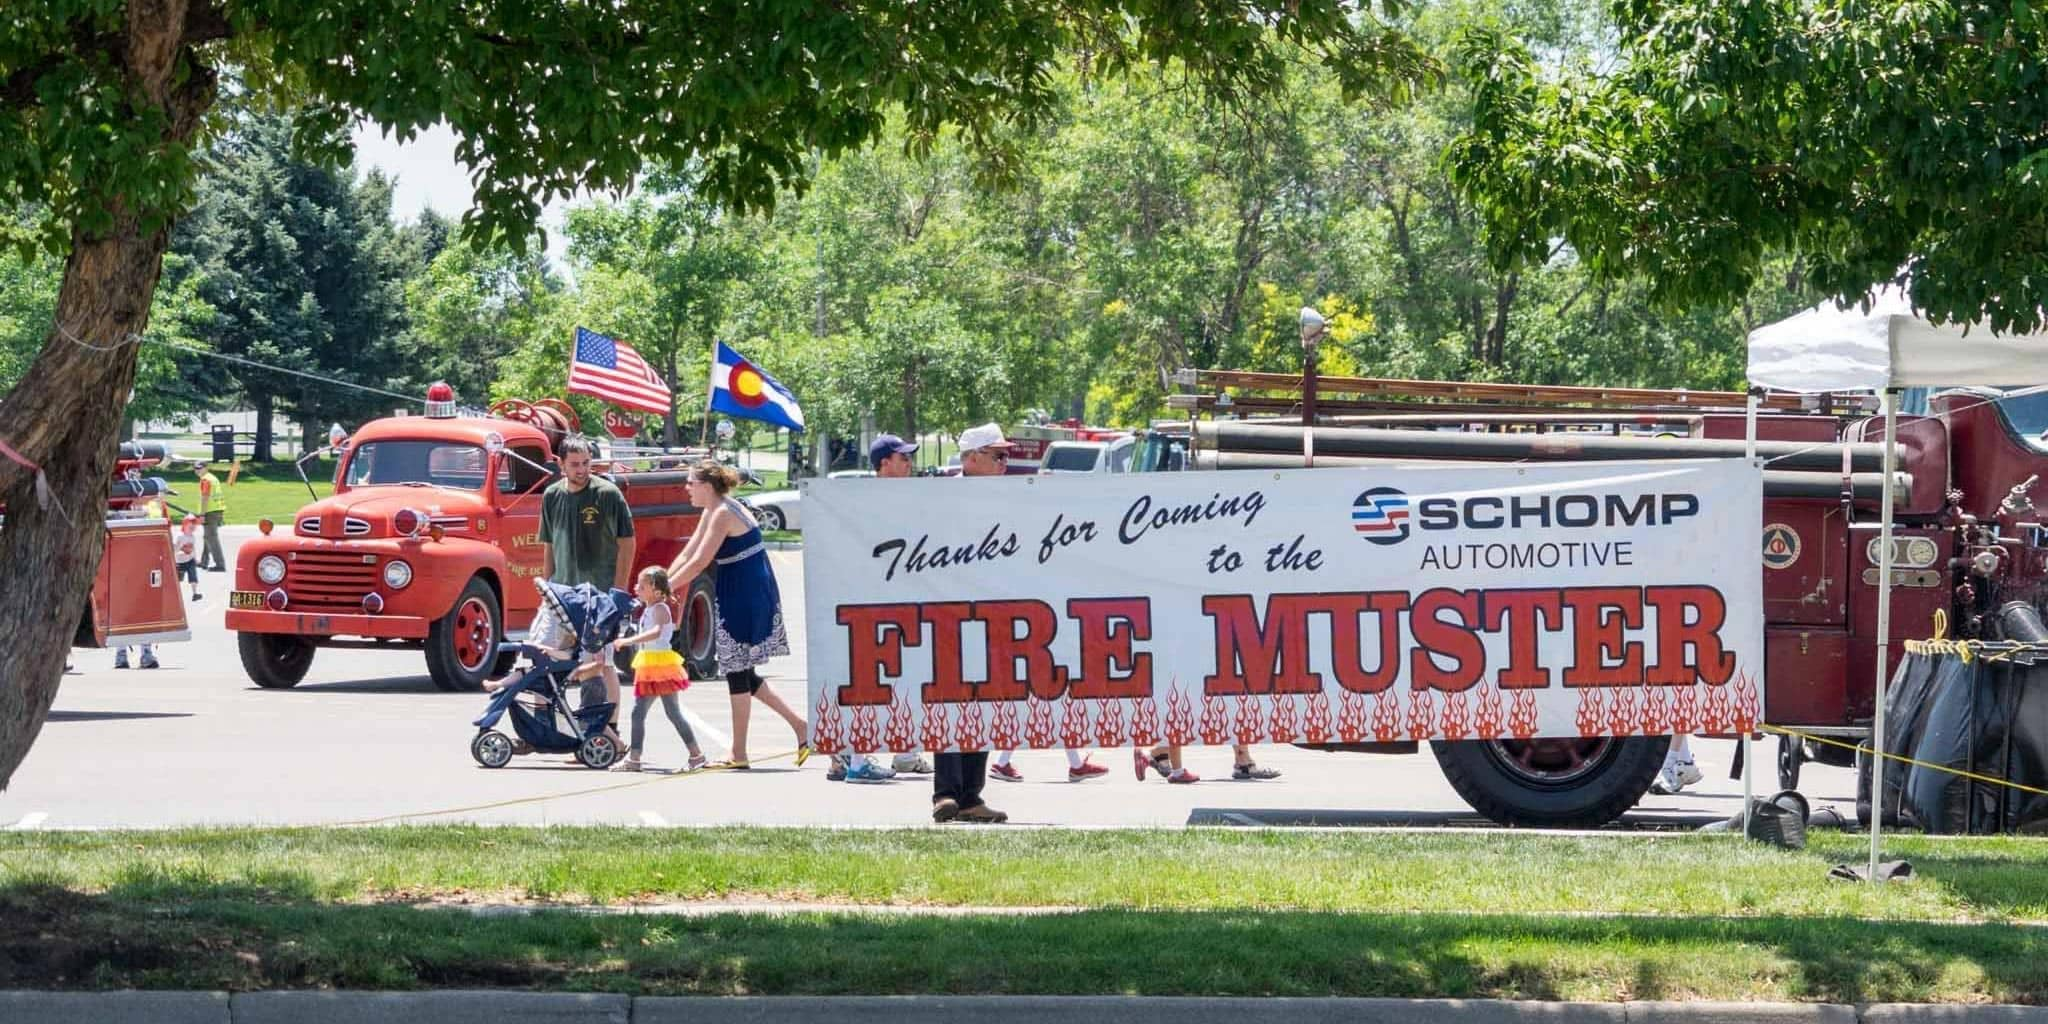 2015 marked the 30th anniversary of the fire truck parade and muster taking place in our hometown of littleton the original event in 1985 was held in the